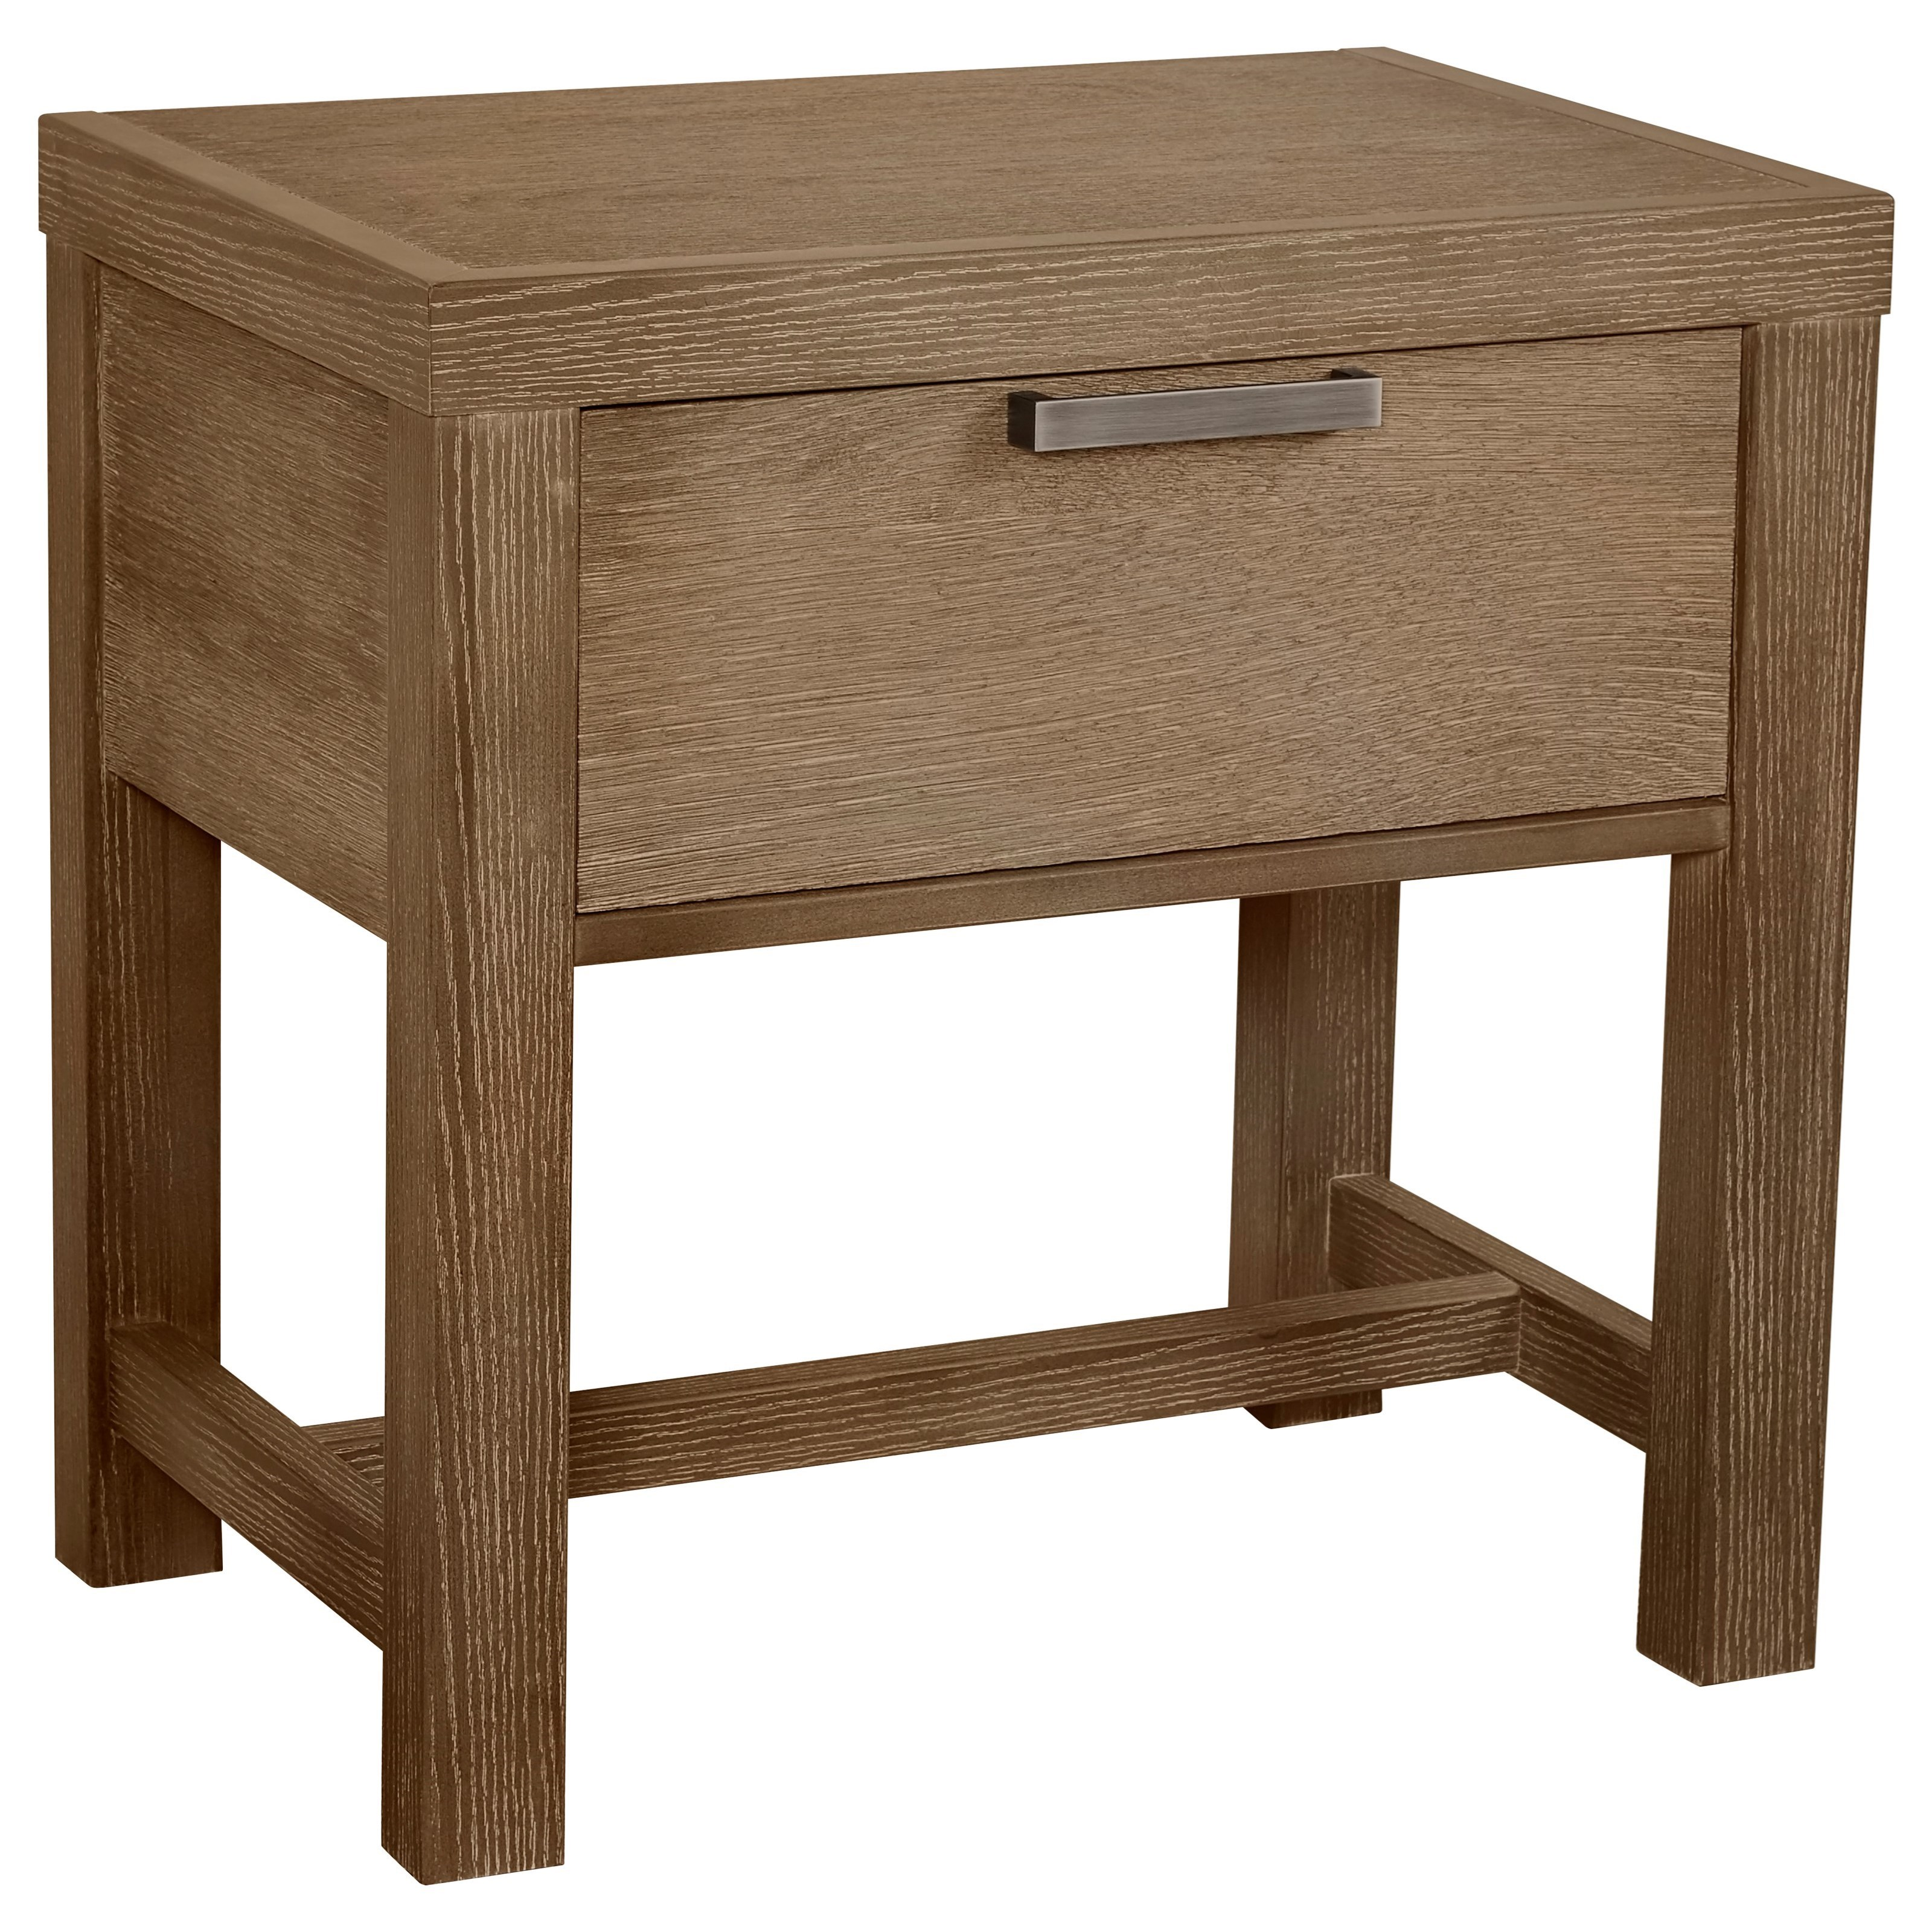 Vaughan Bassett American Modern Bedside Table - 1 Drawer w/ USB Charging - Item Number: 652-224